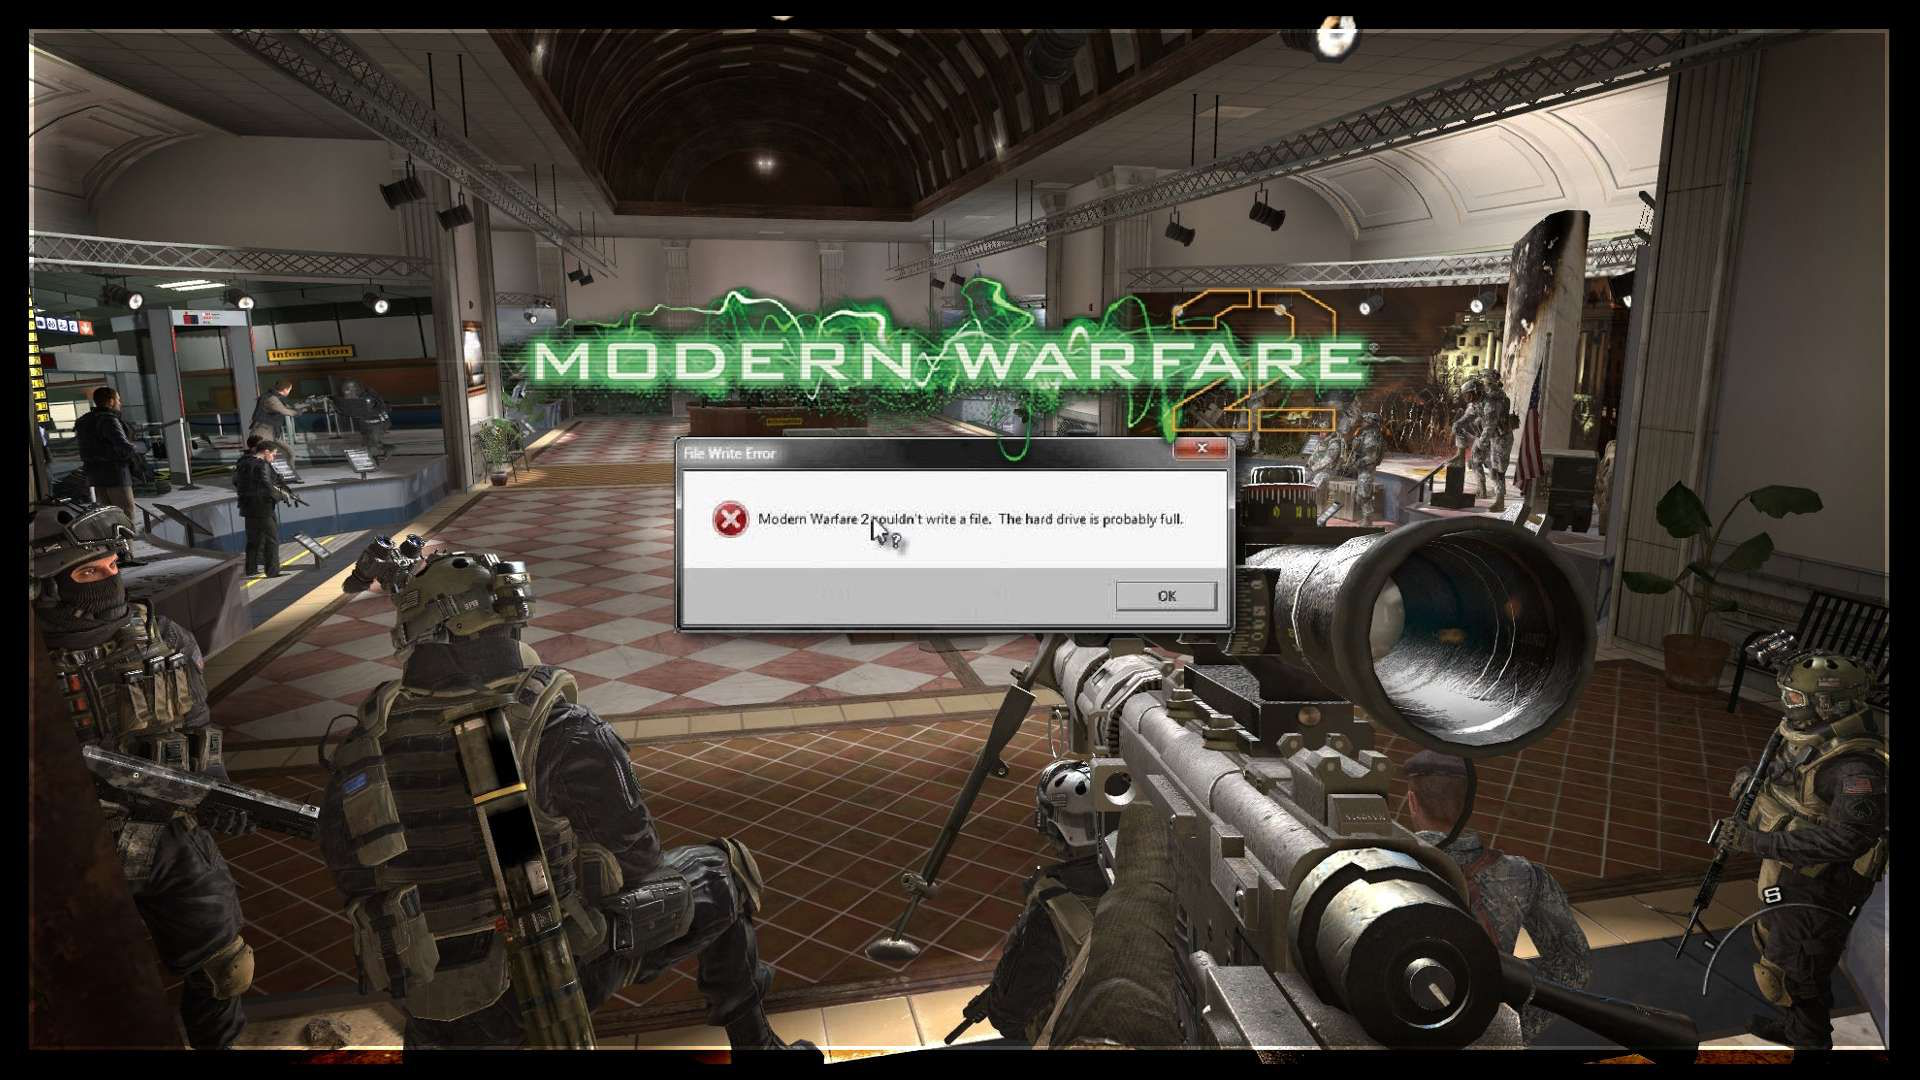 Call Of Duty Modern Warfare 3 Couldn't Load Image XP – Solved